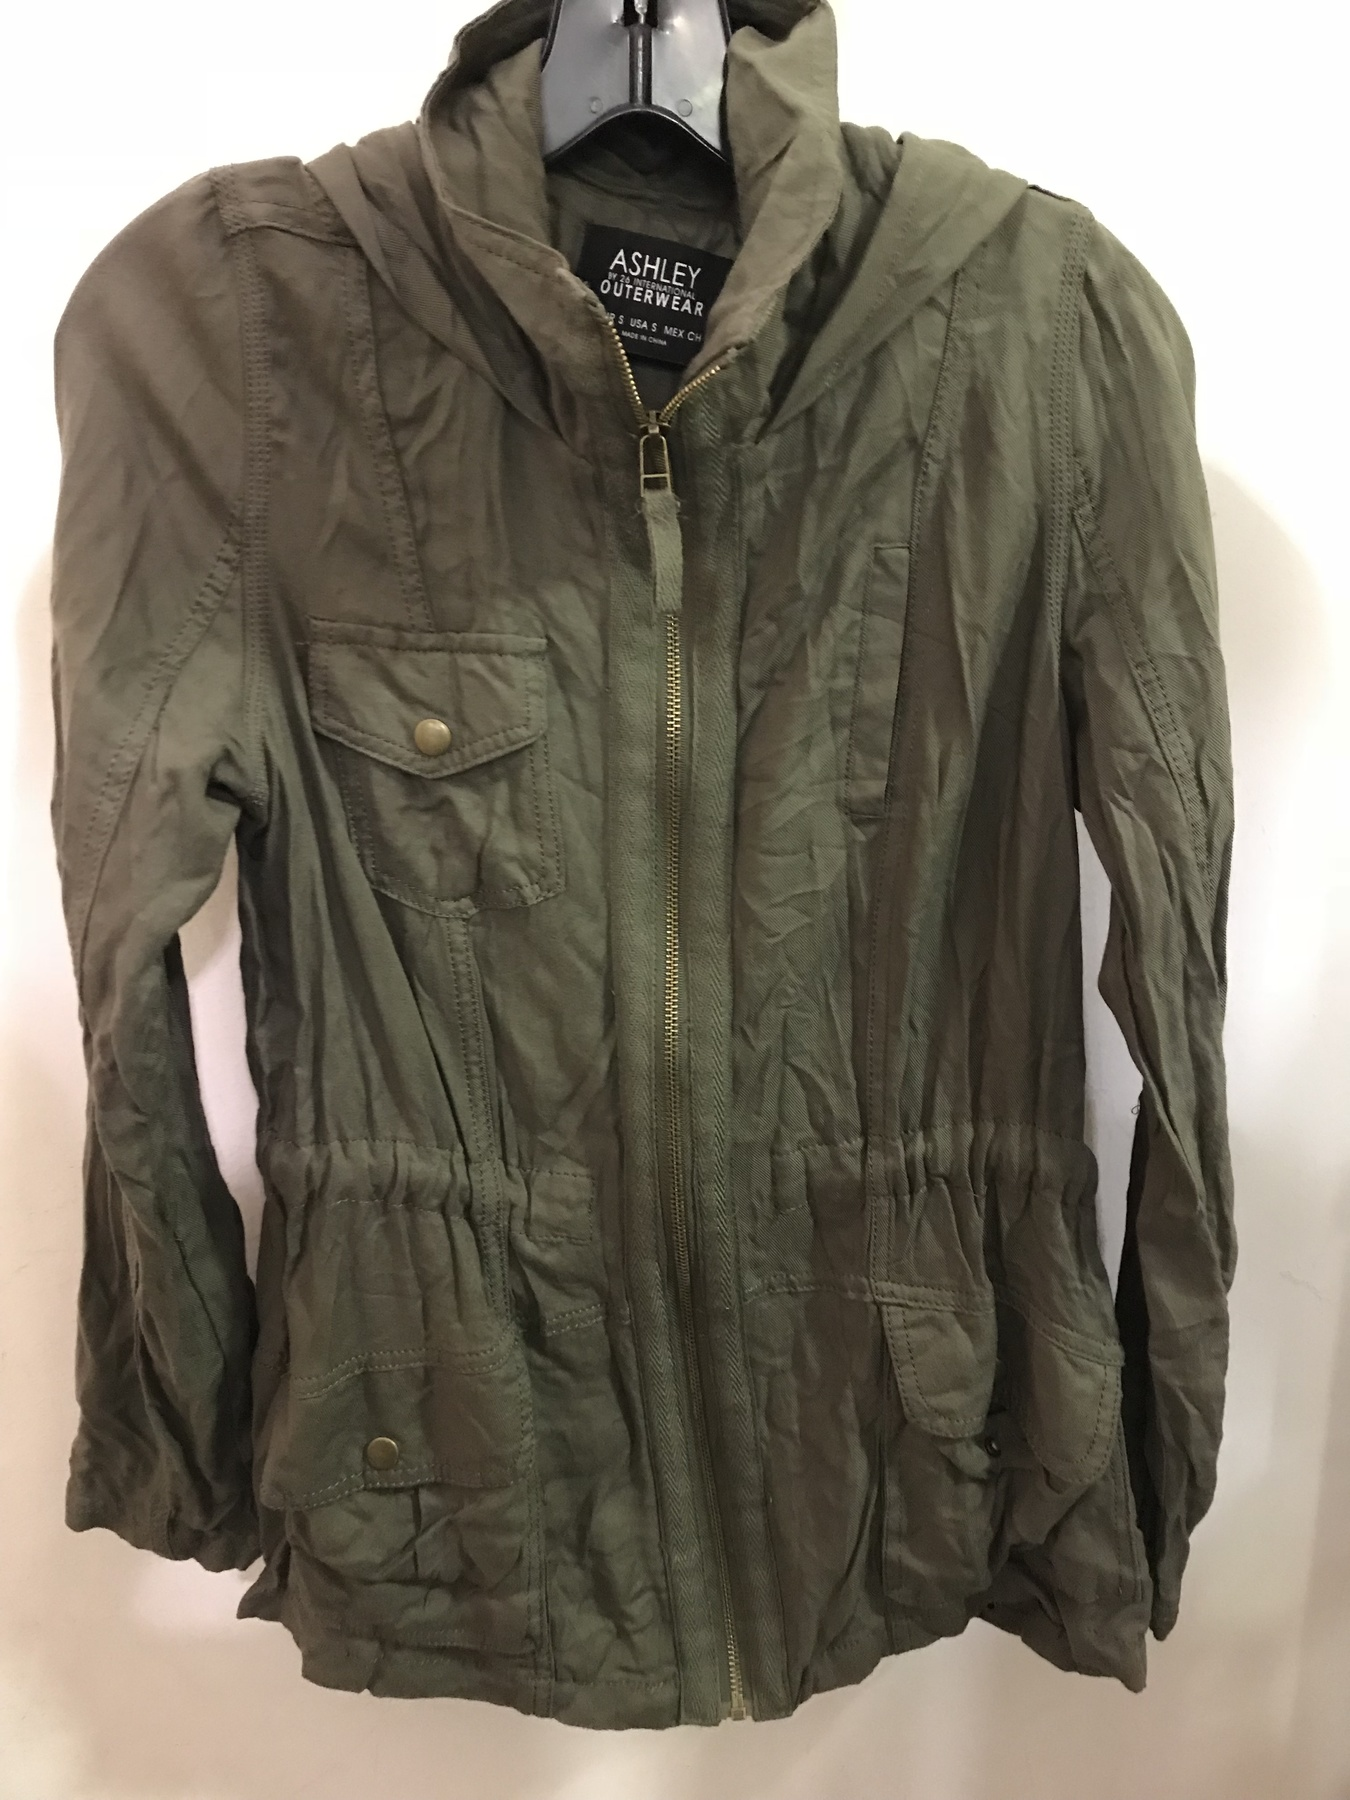 Green utility jacket by Ashley Outwear found at Columbia Pike Goodwill